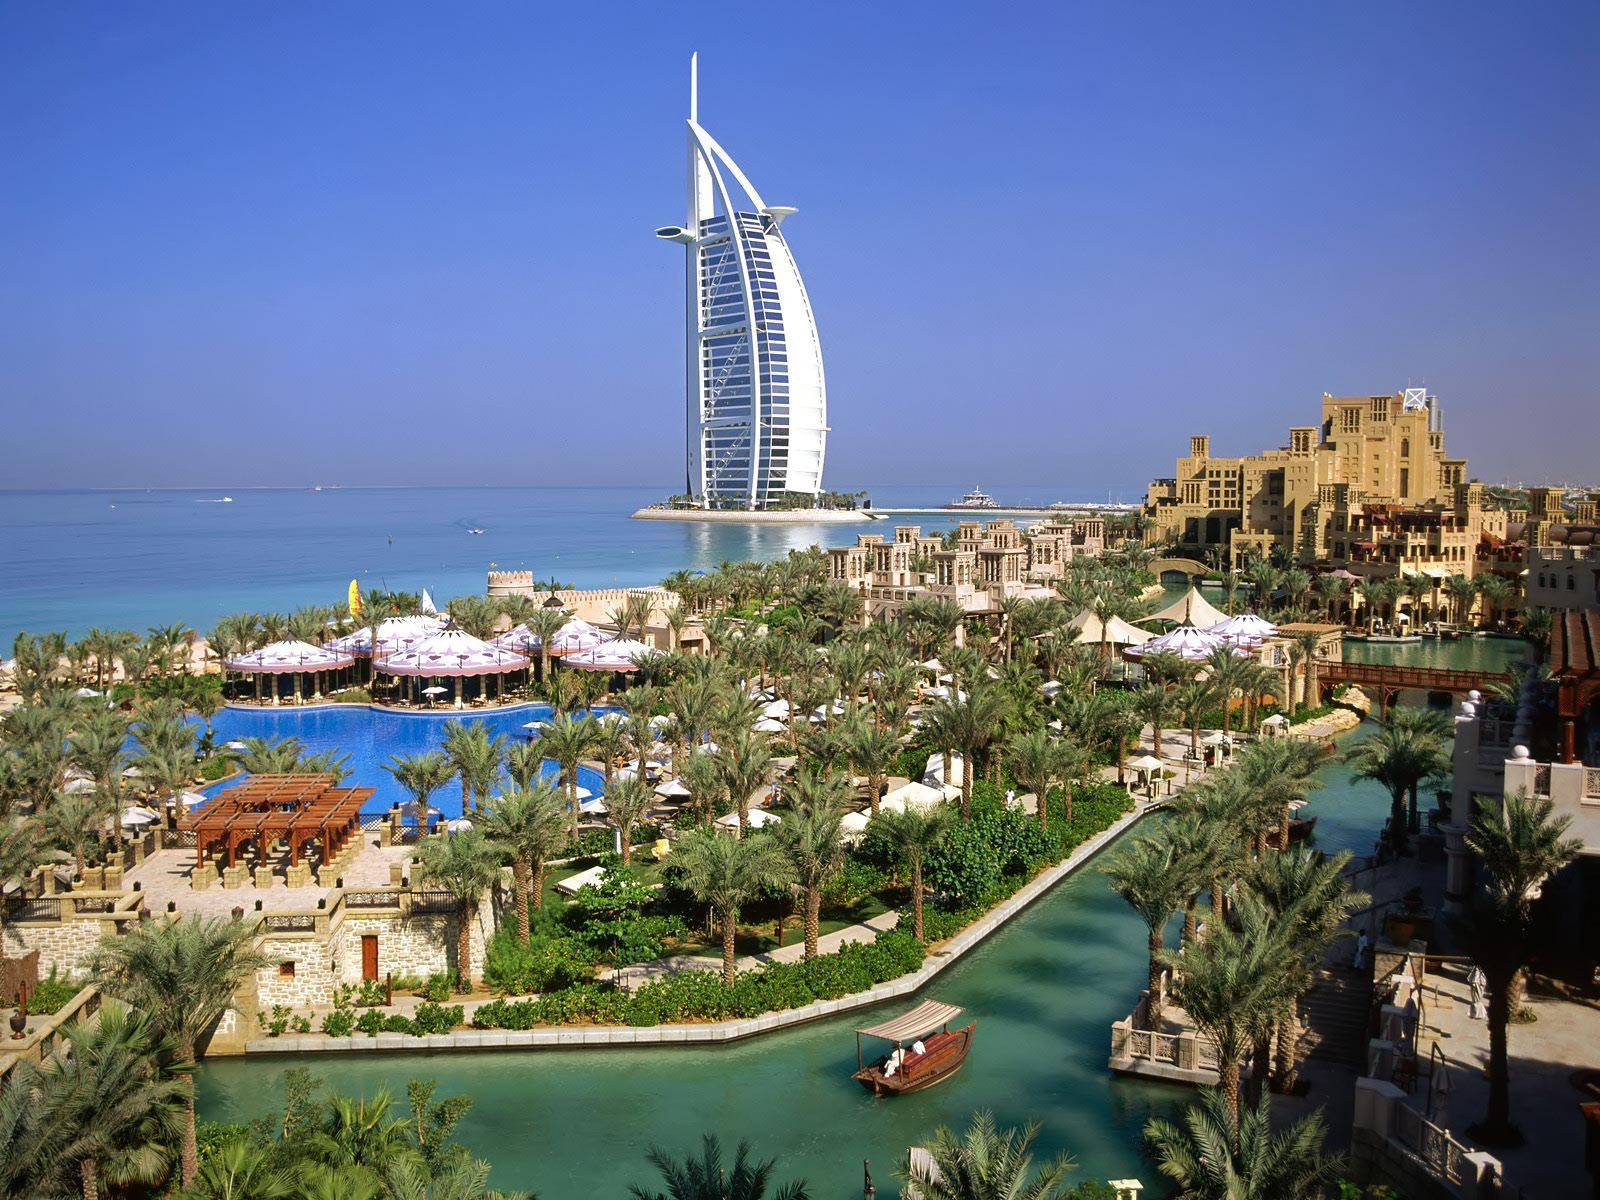 Burj al arab dubai tourist destinations for All hotels in dubai